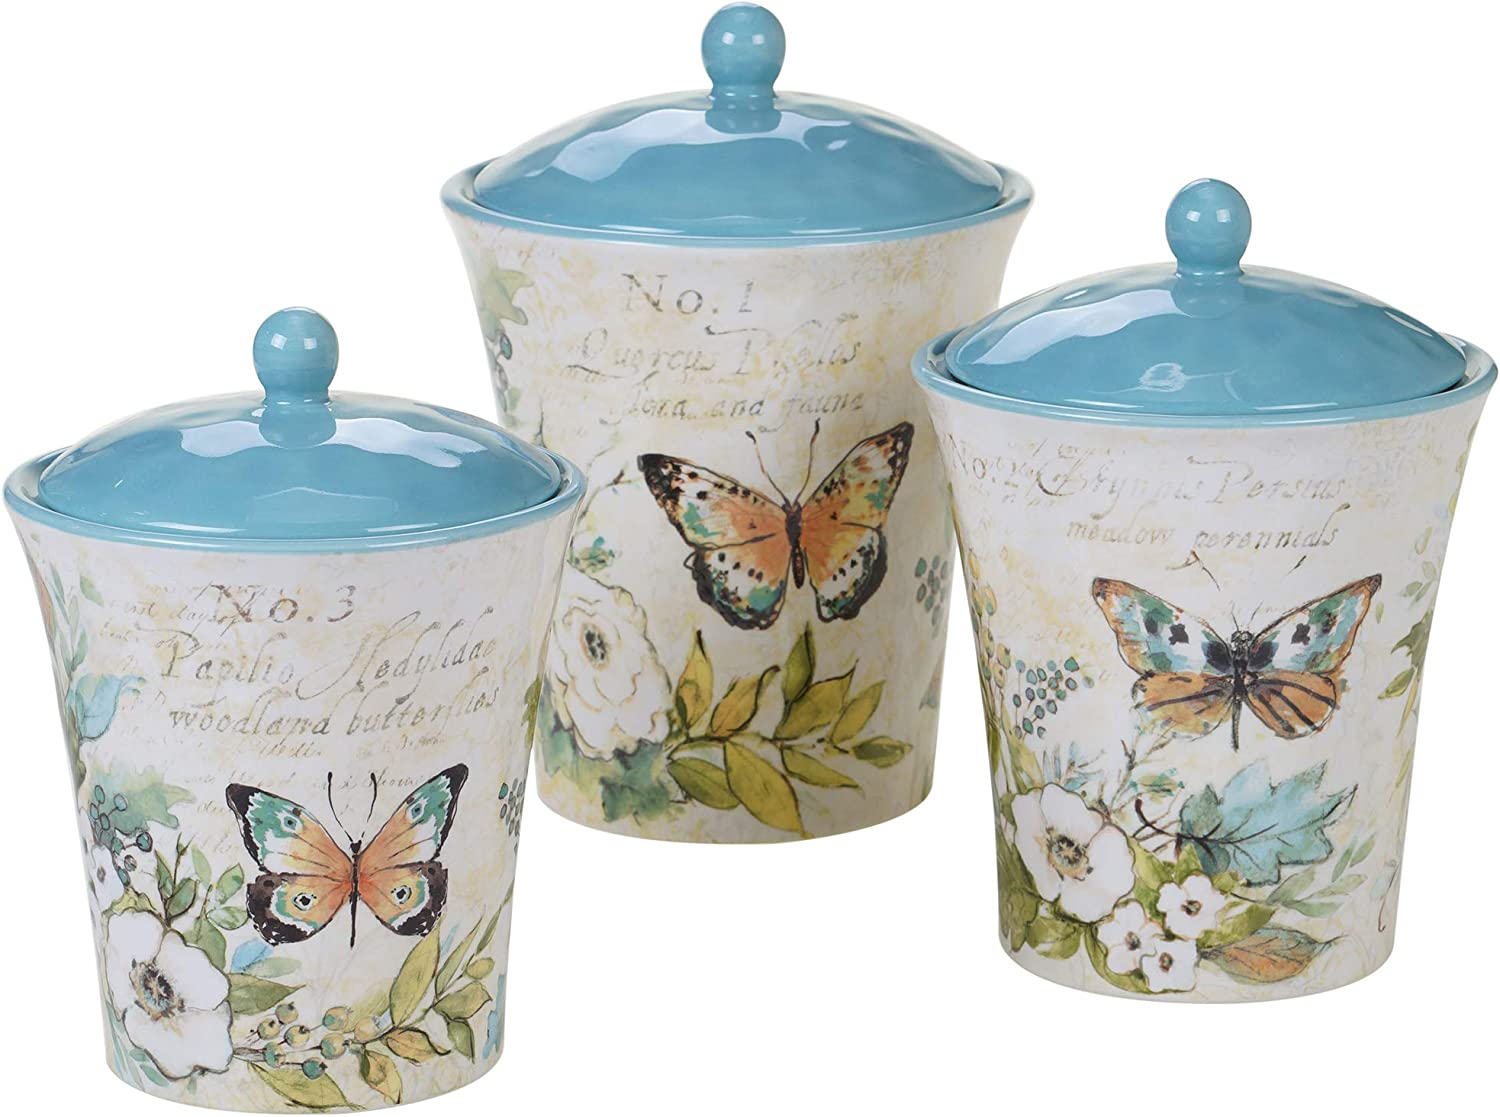 Certified International Nature Garden Canister Set 3 pc, Multicolored